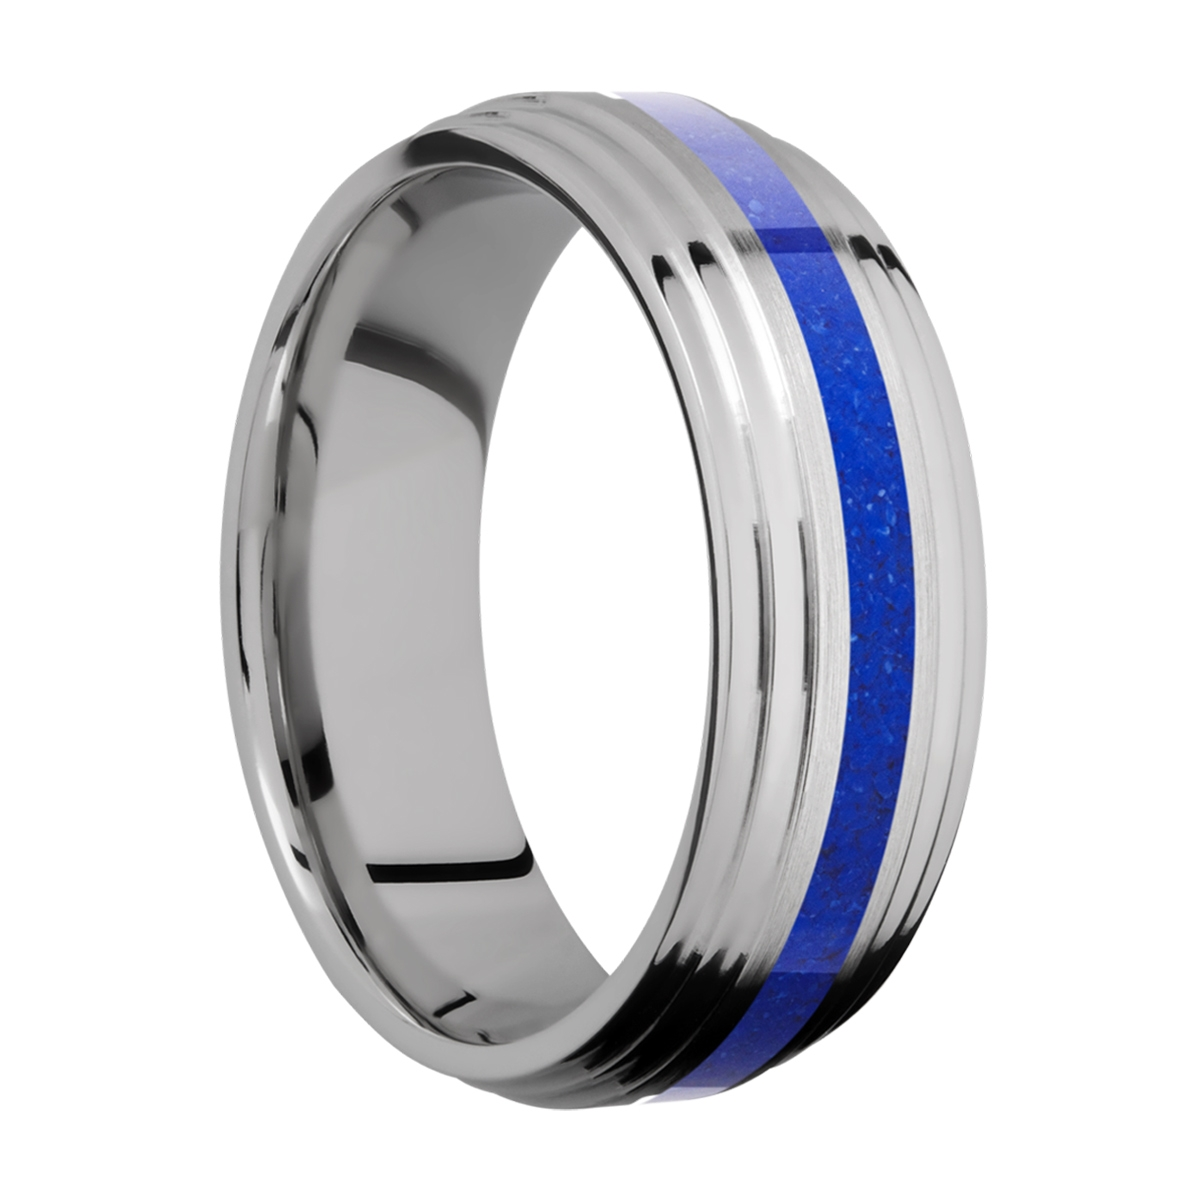 Lashbrook 7F2S12/MOSAIC Titanium Wedding Ring or Band Alternative View 1